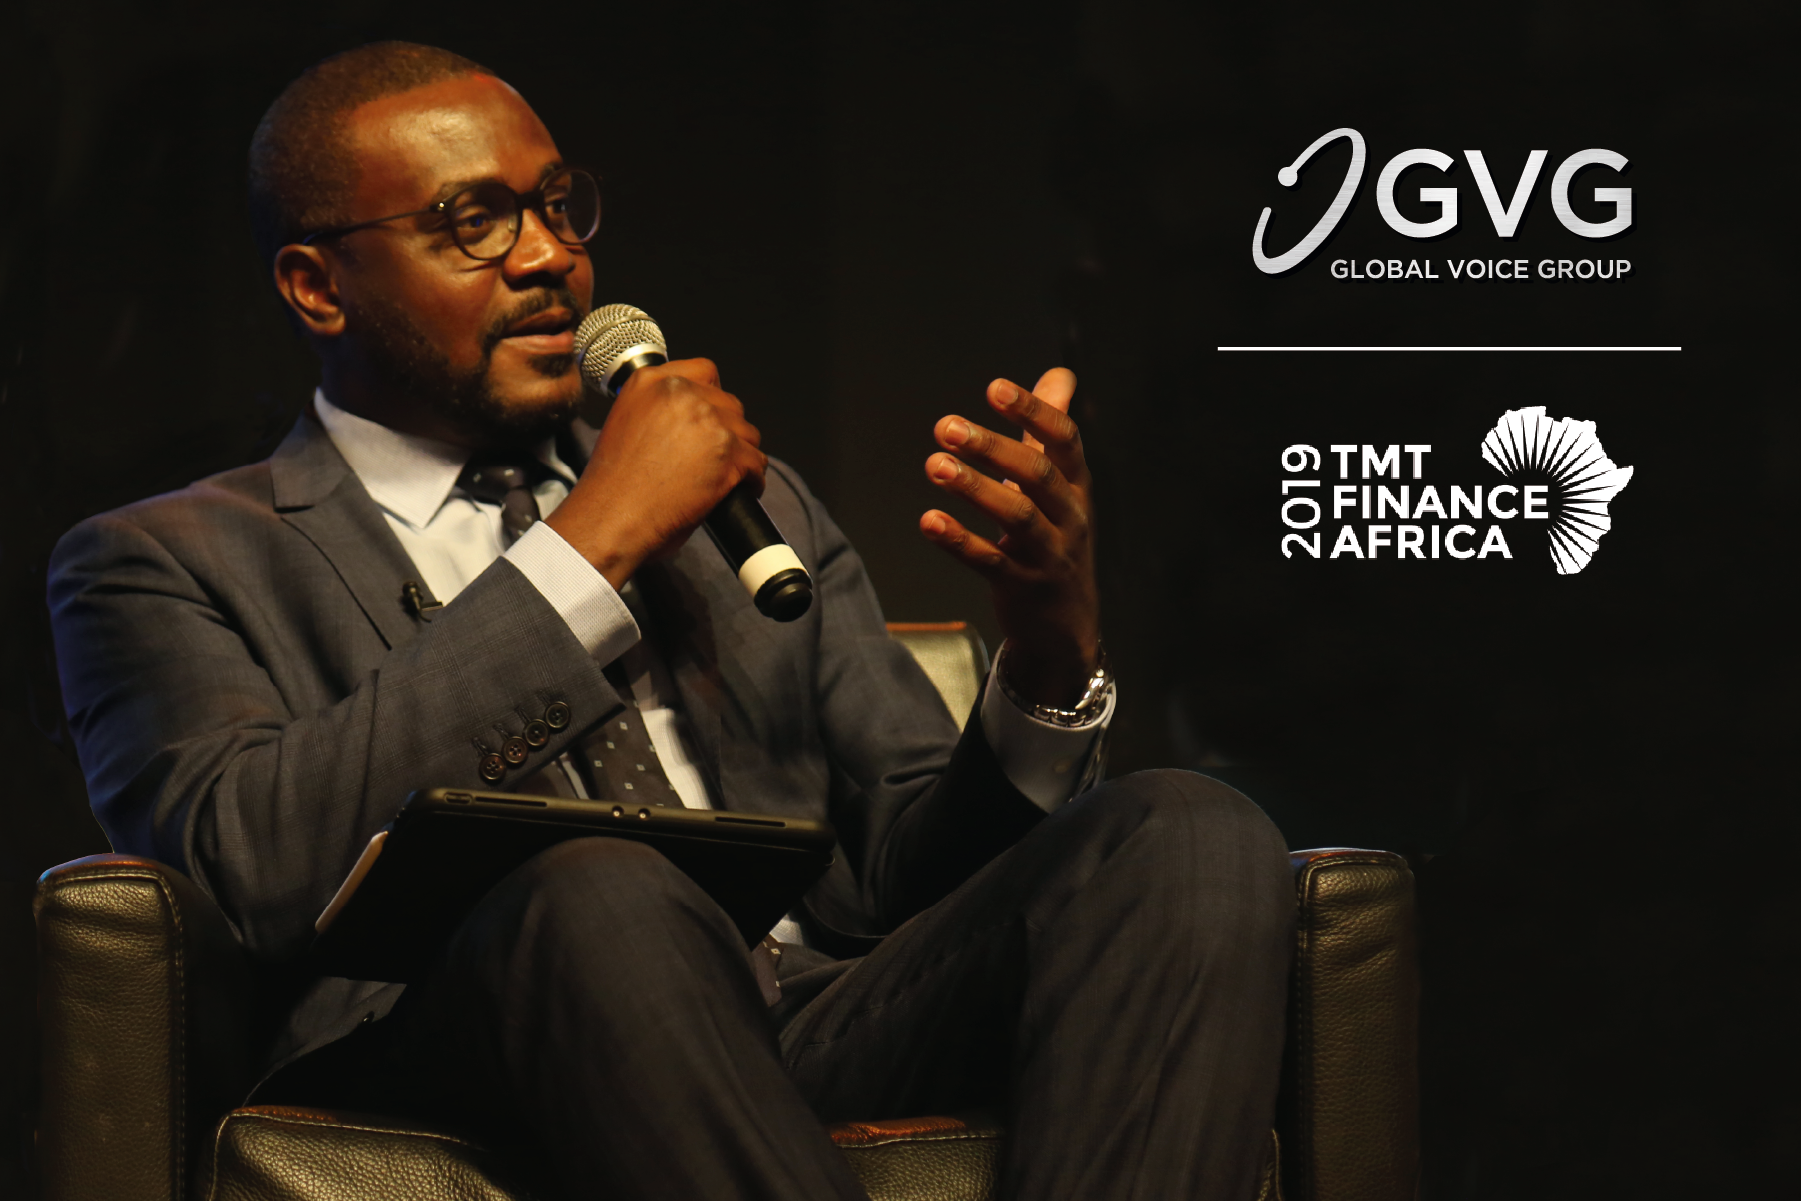 GVG At The TMT Finance Africa 2019 Event